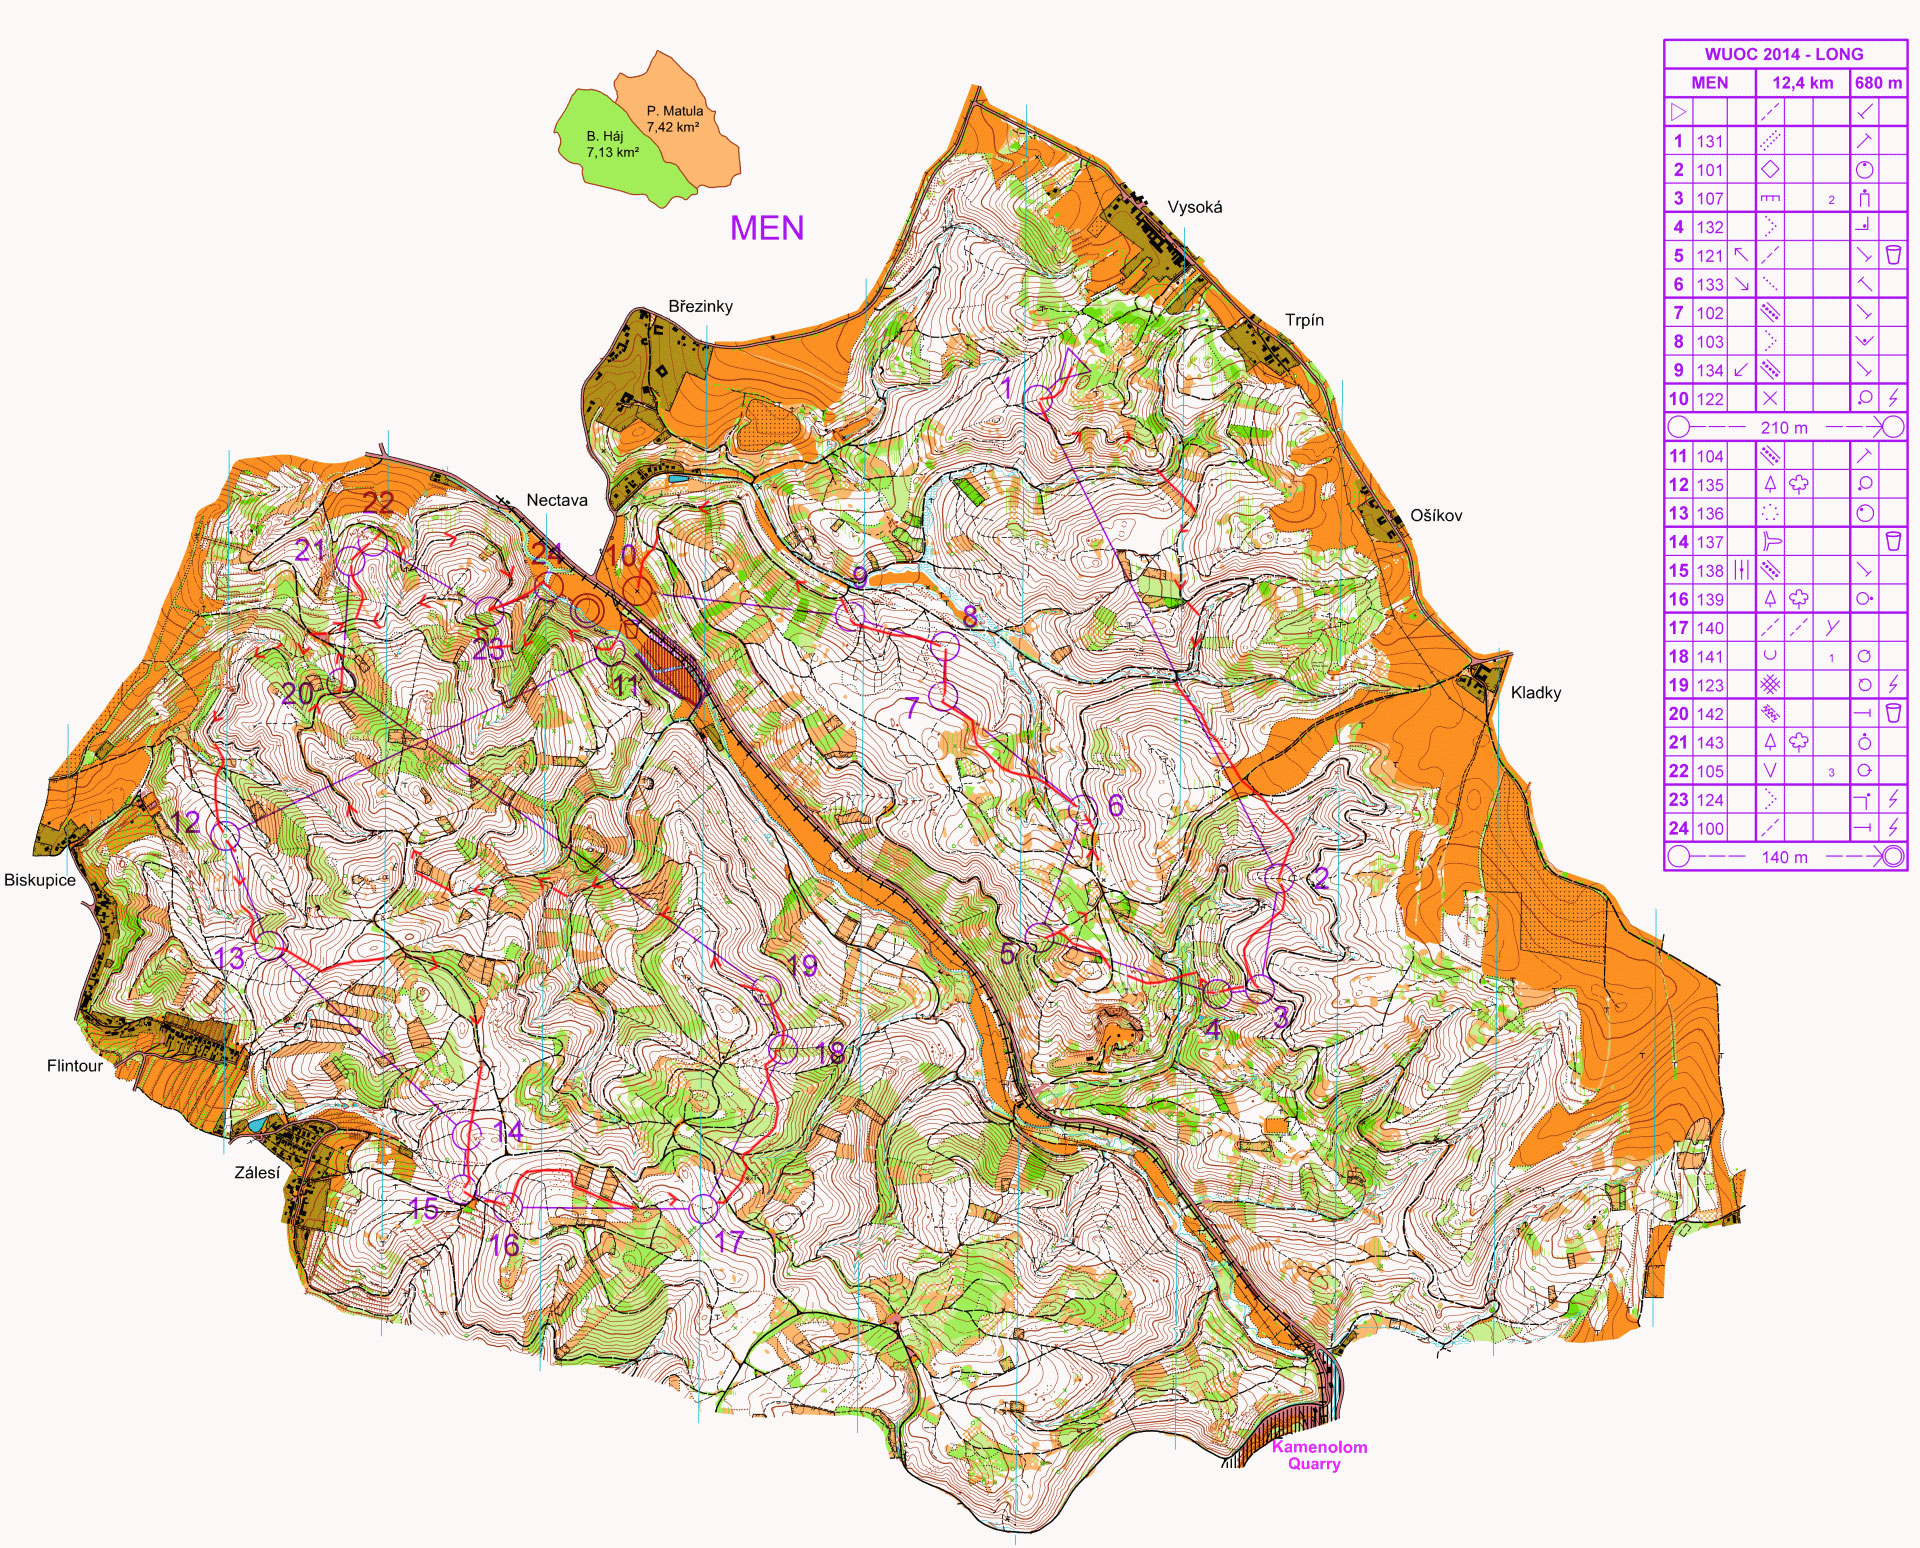 World University Orienteering Championships Long Distance (13/08/2014)